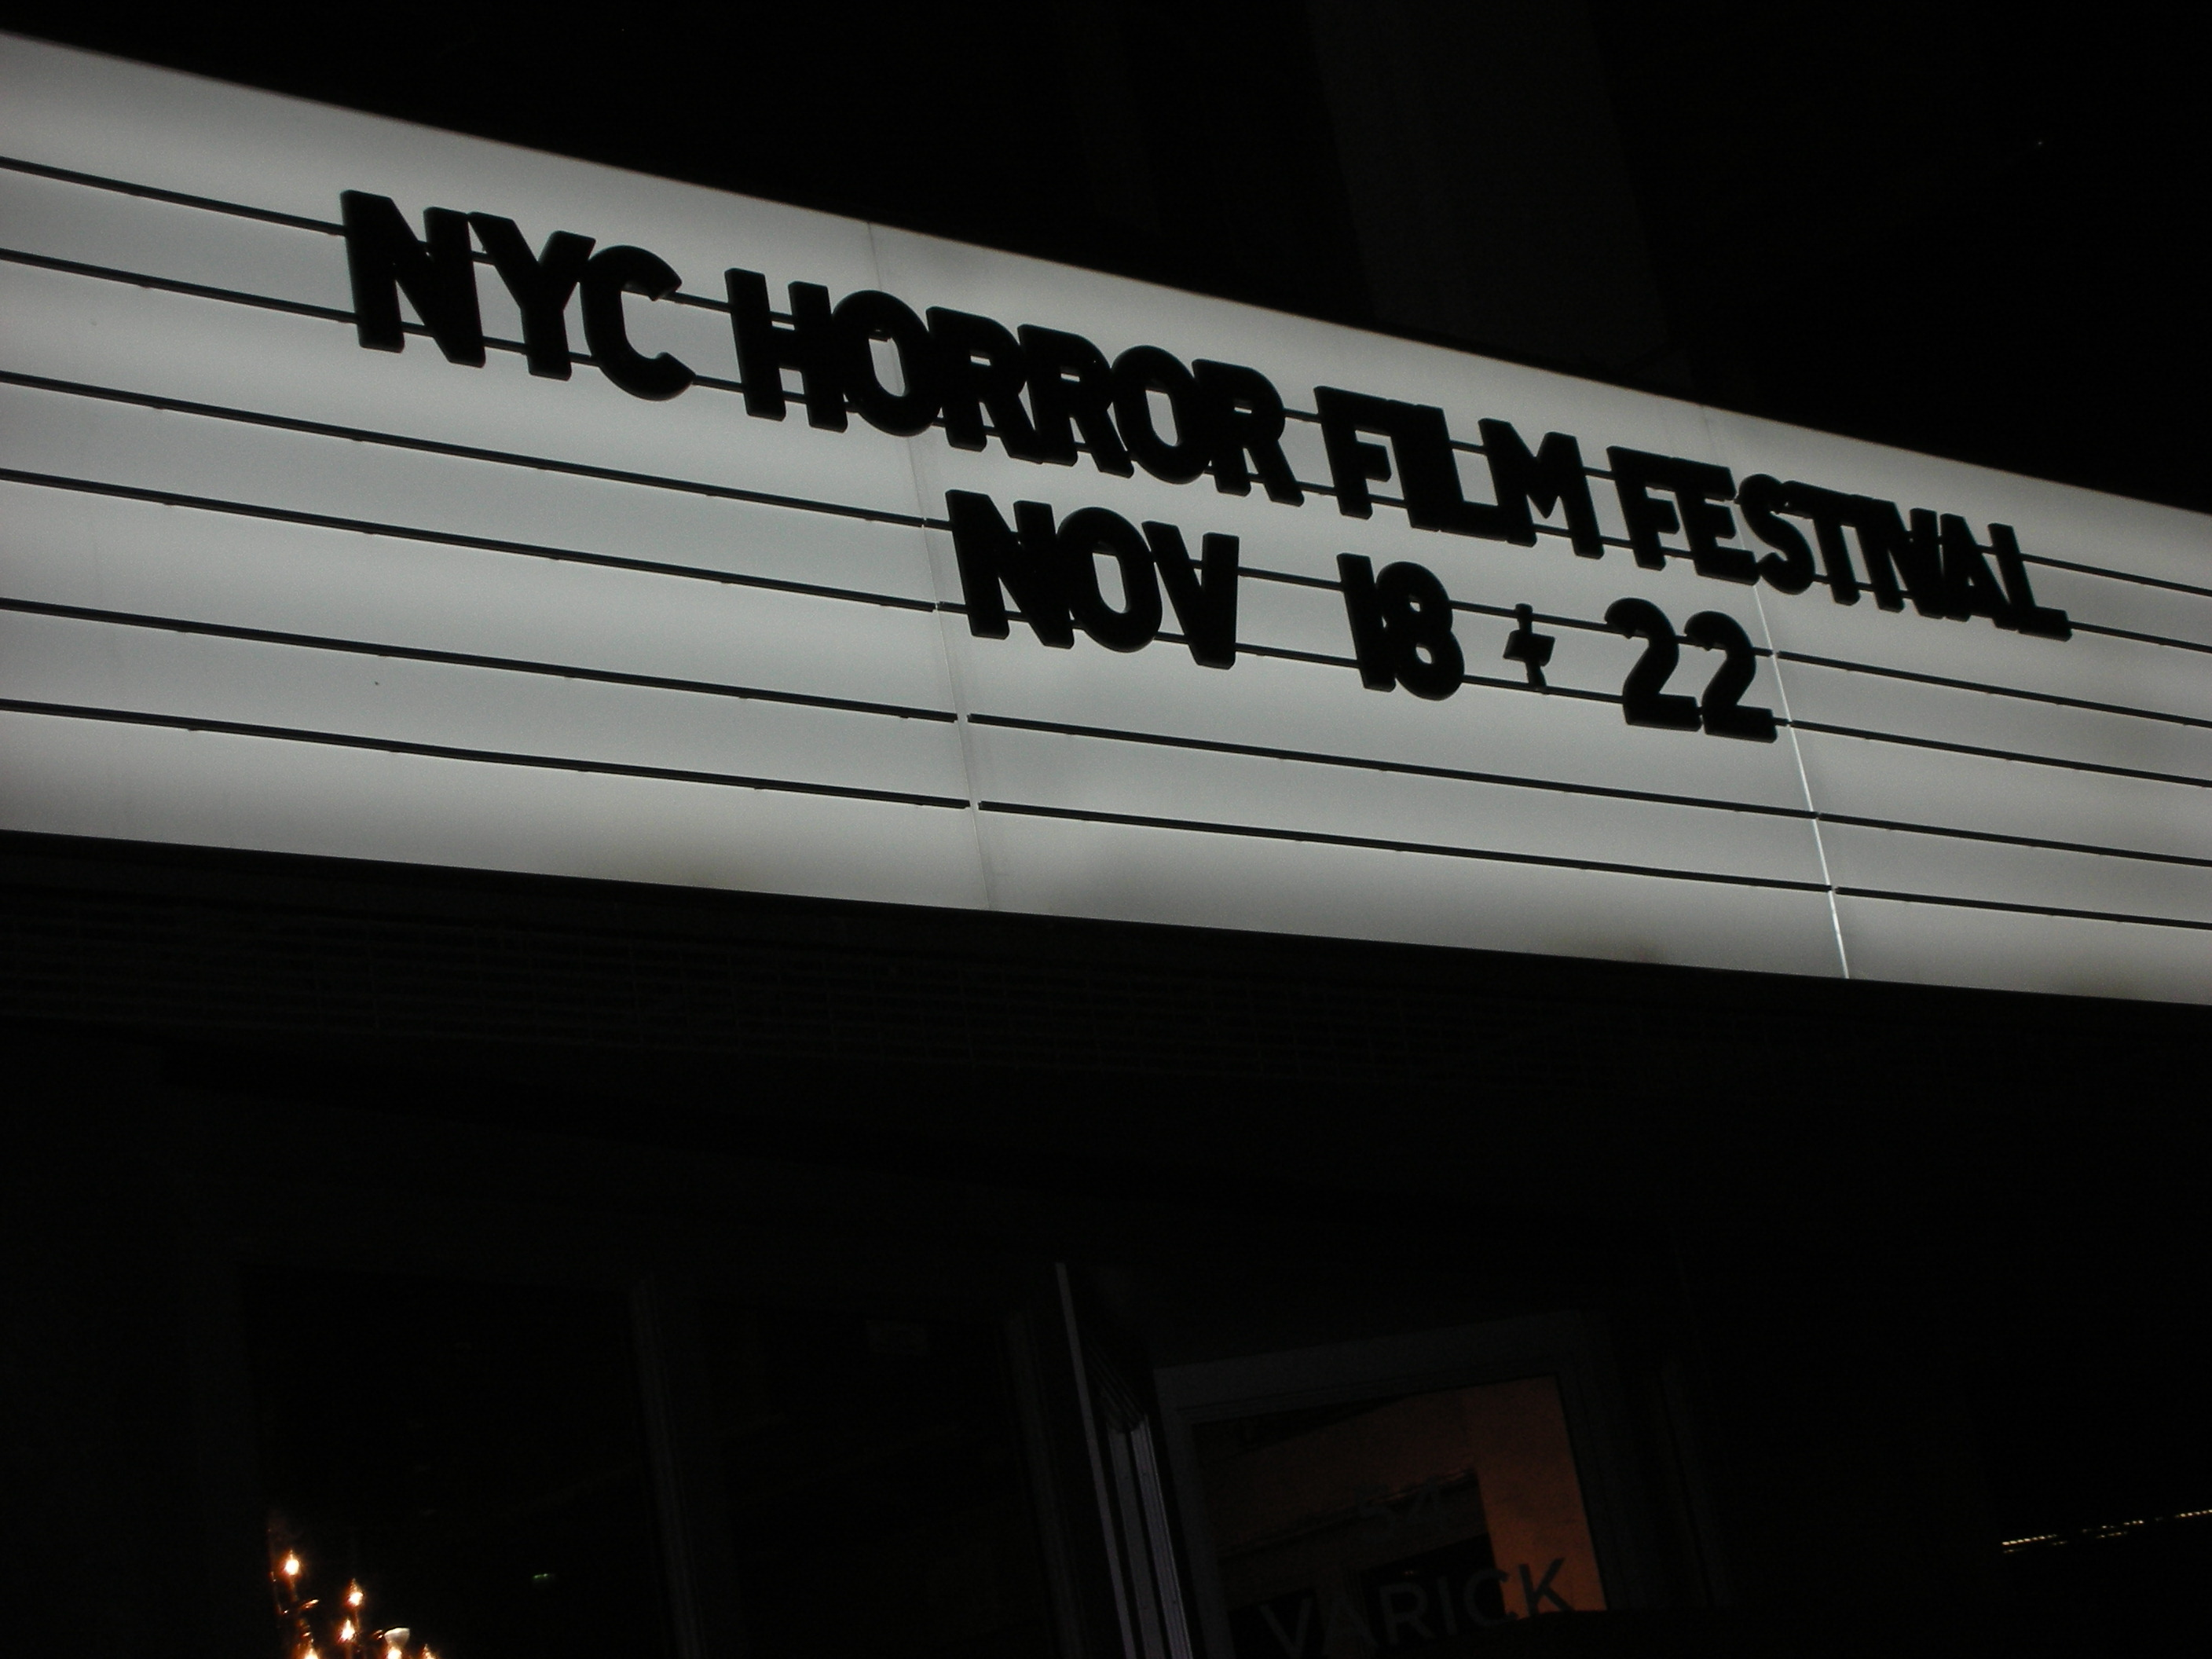 Marquee for the NYCHFF